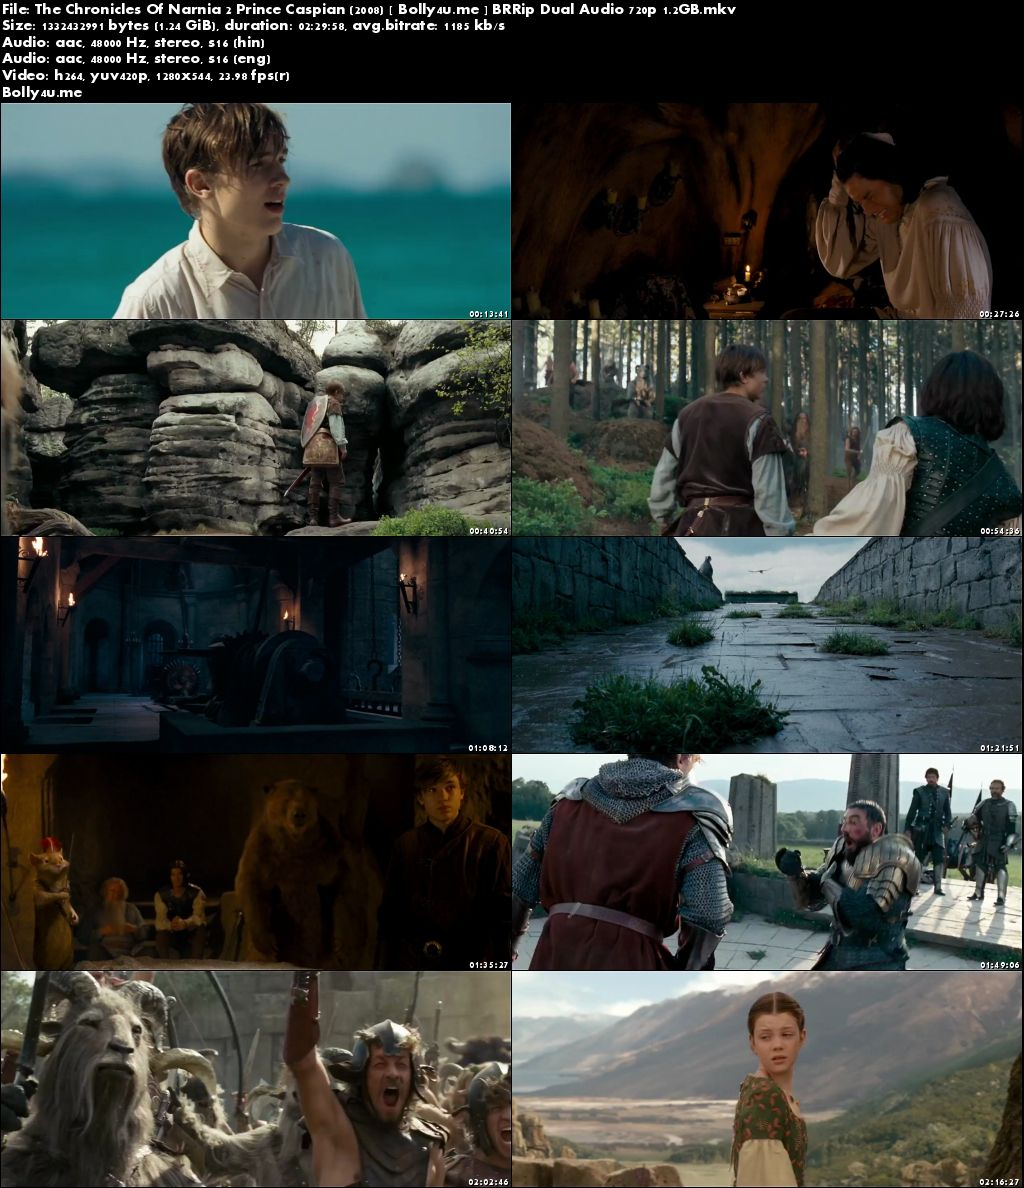 Narnia Movie In Hindi Download - polrenerd's diary